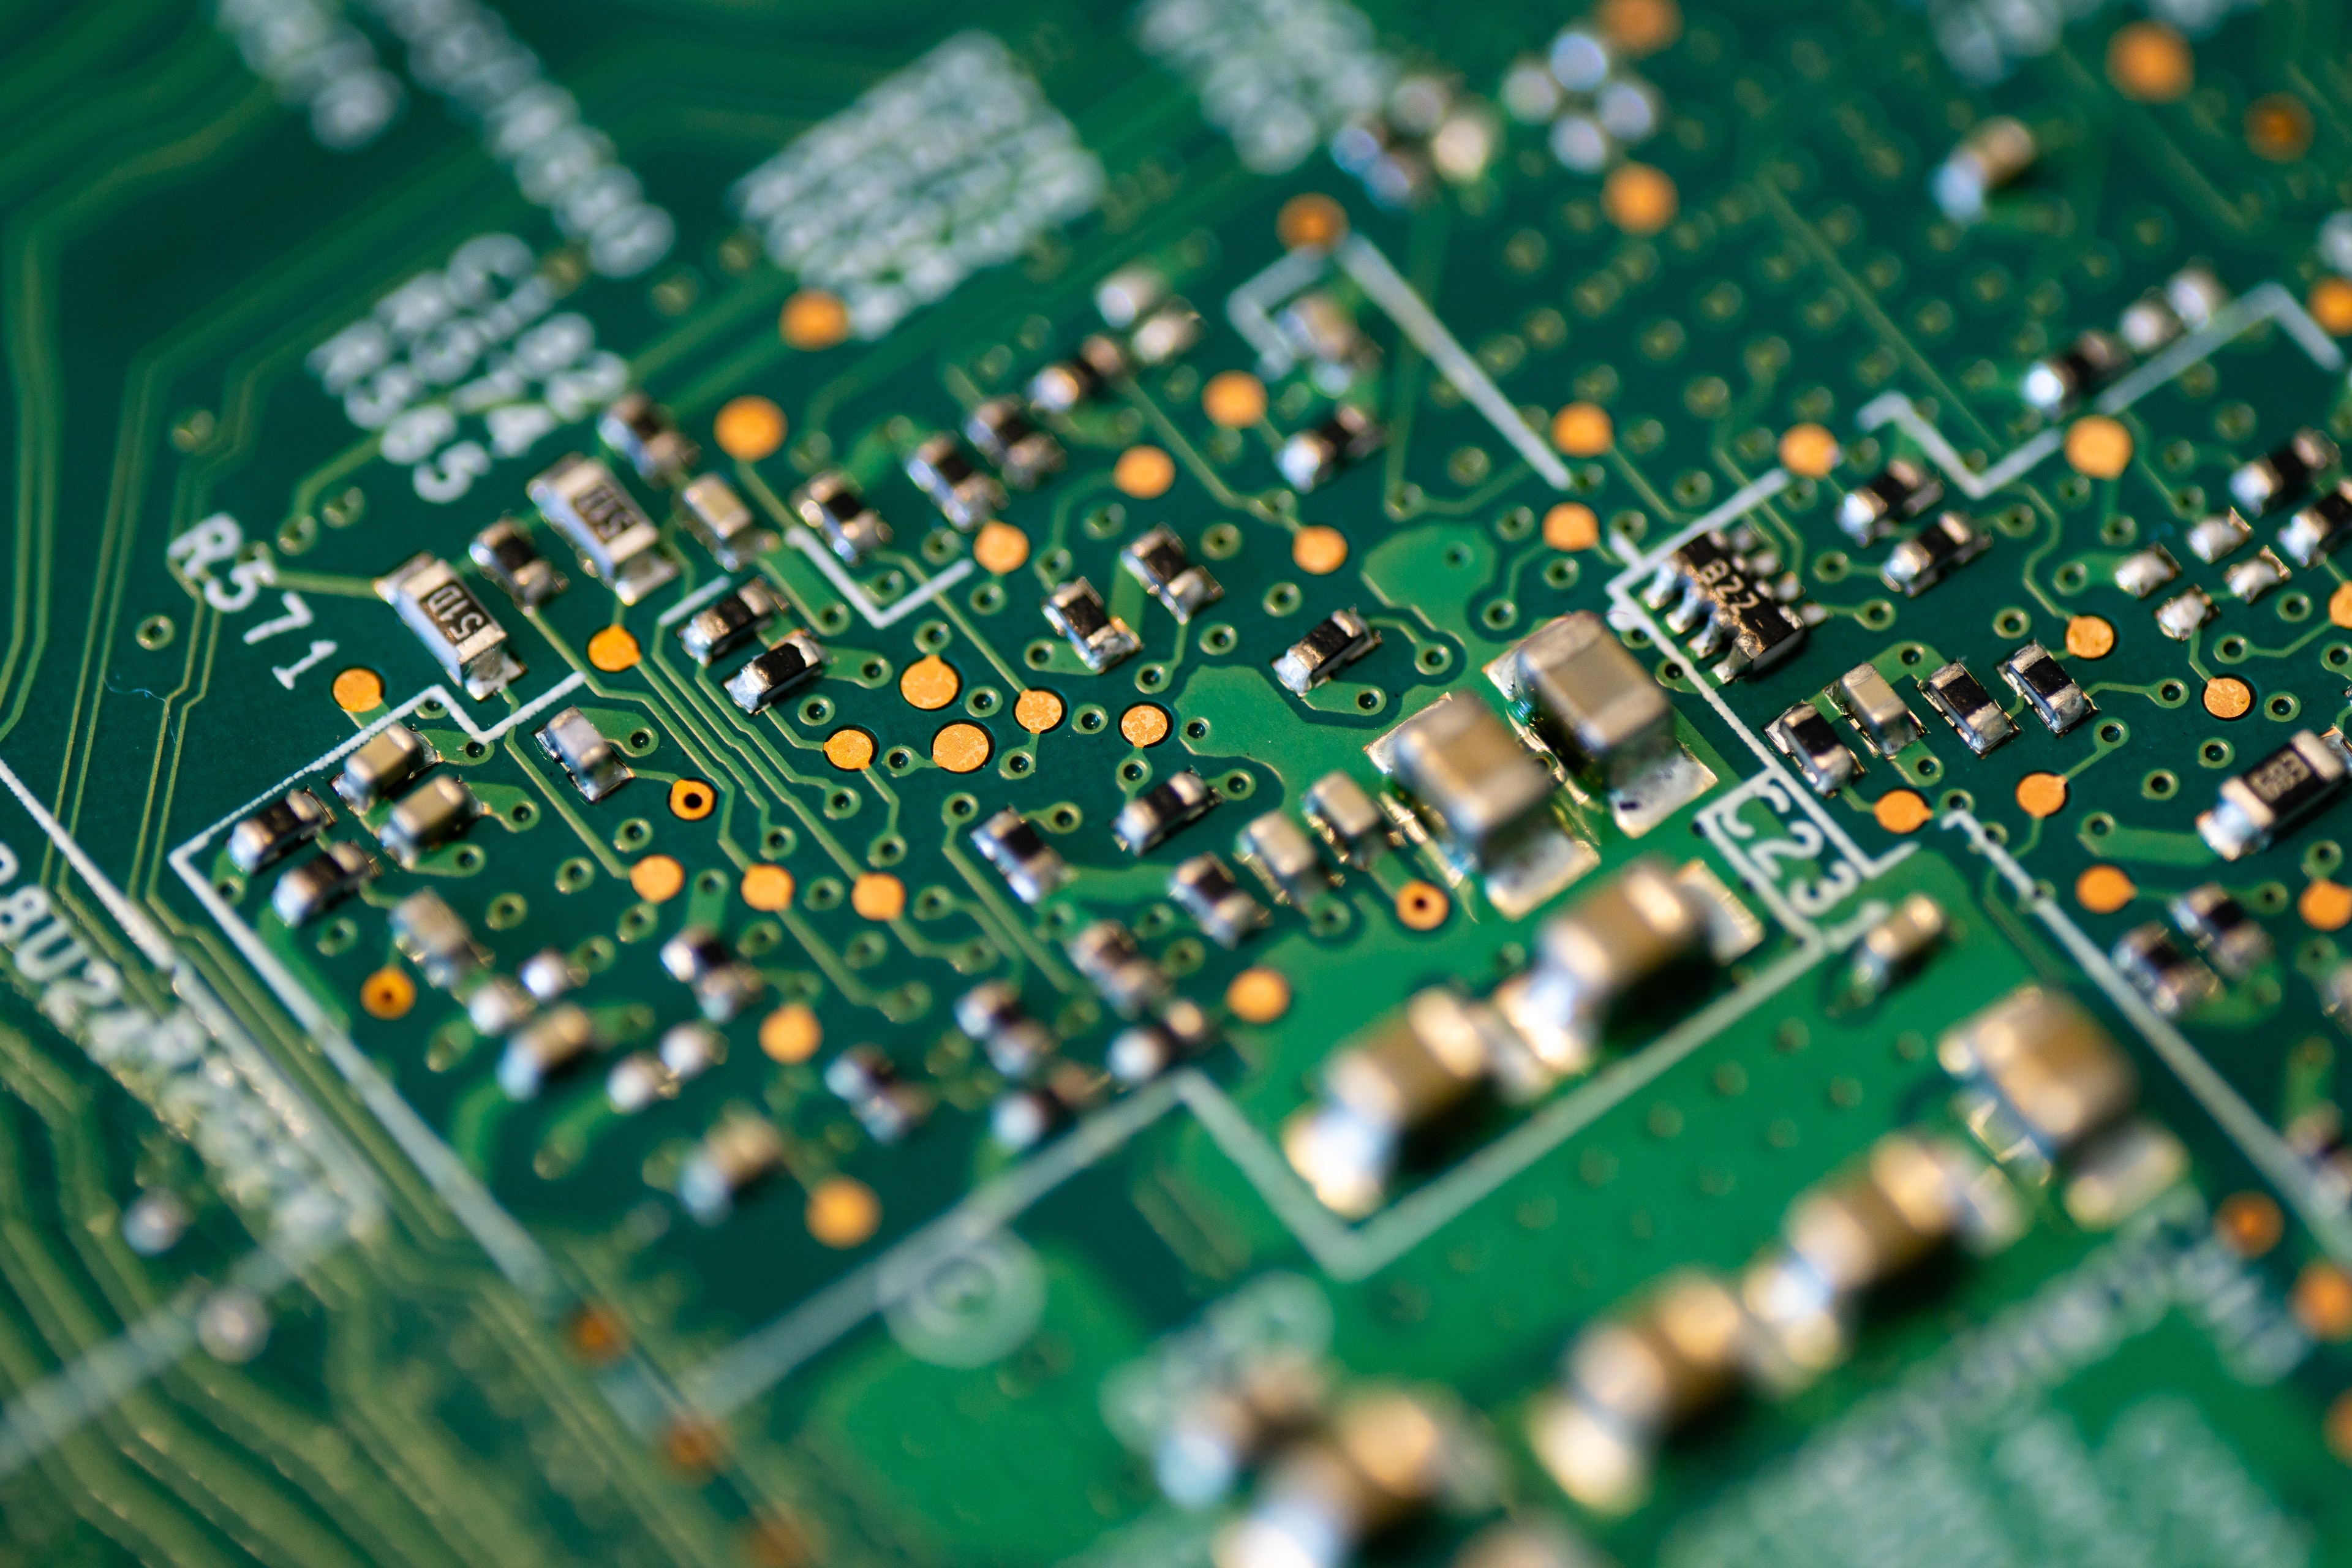 green and white circuit board